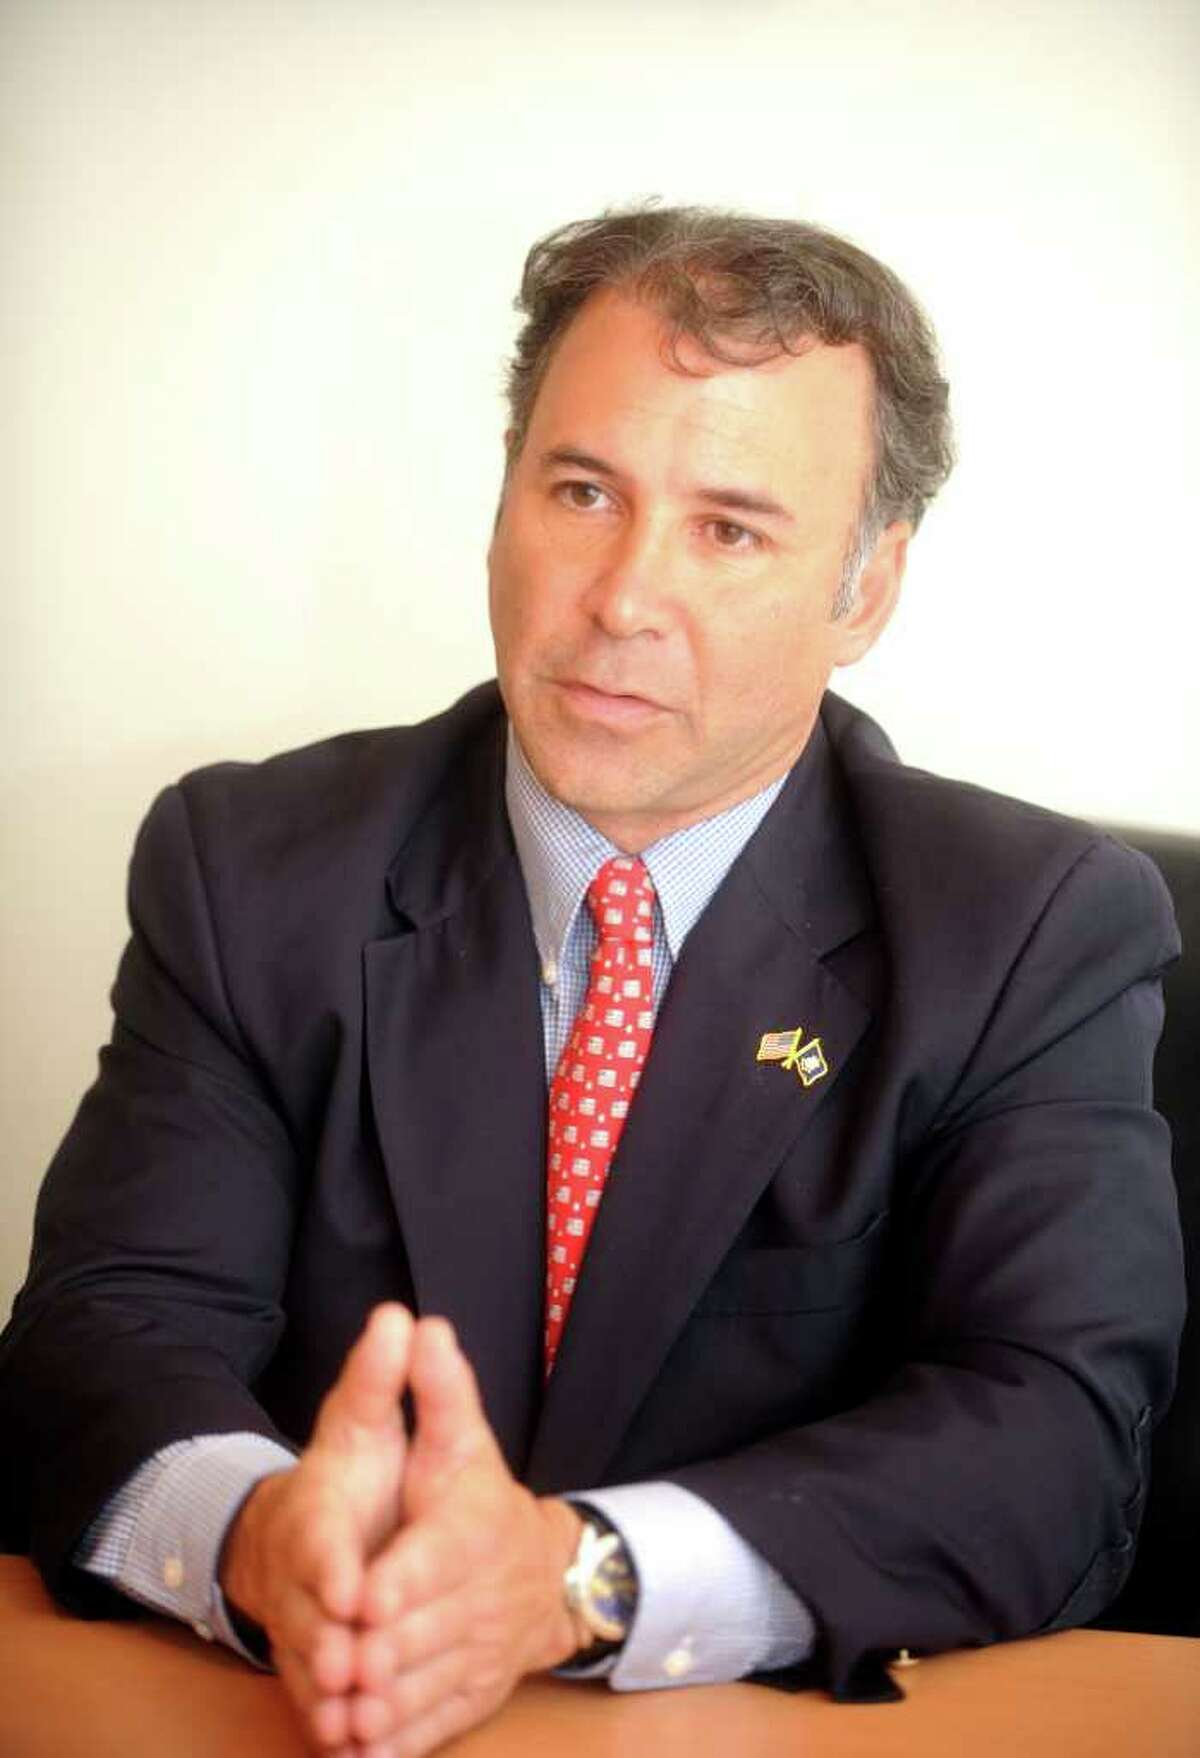 State Rep. Fred Camillo, R-151st District, shown in October 2010.